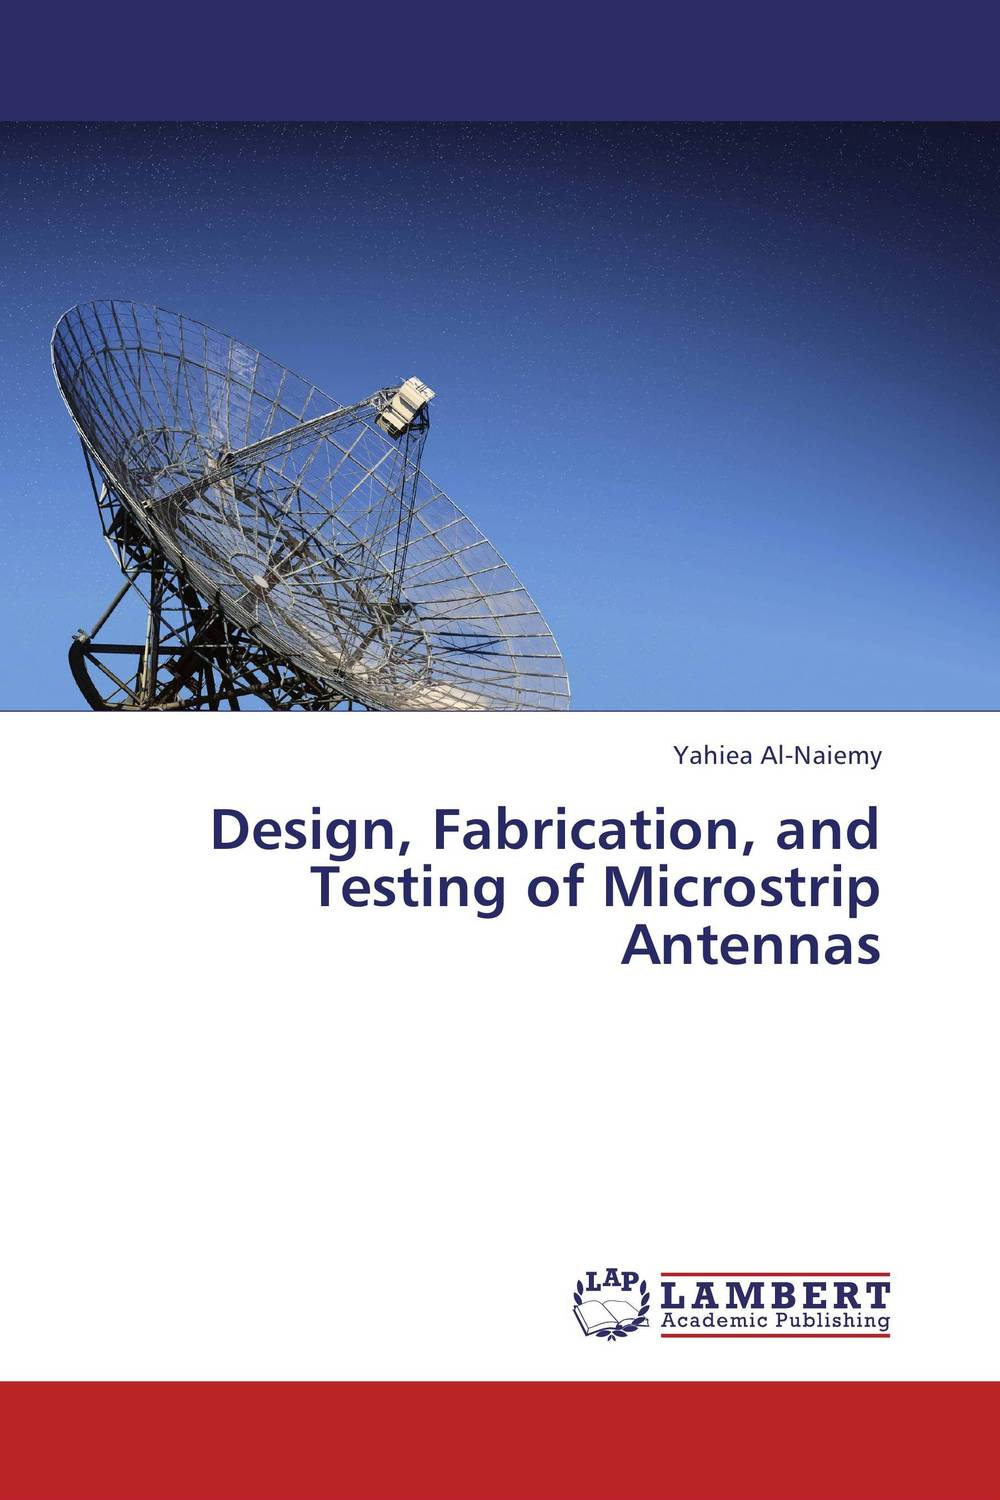 Design, Fabrication, and Testing of Microstrip Antennas design and fabrication plasma diagnostics in ir t1 tokamak